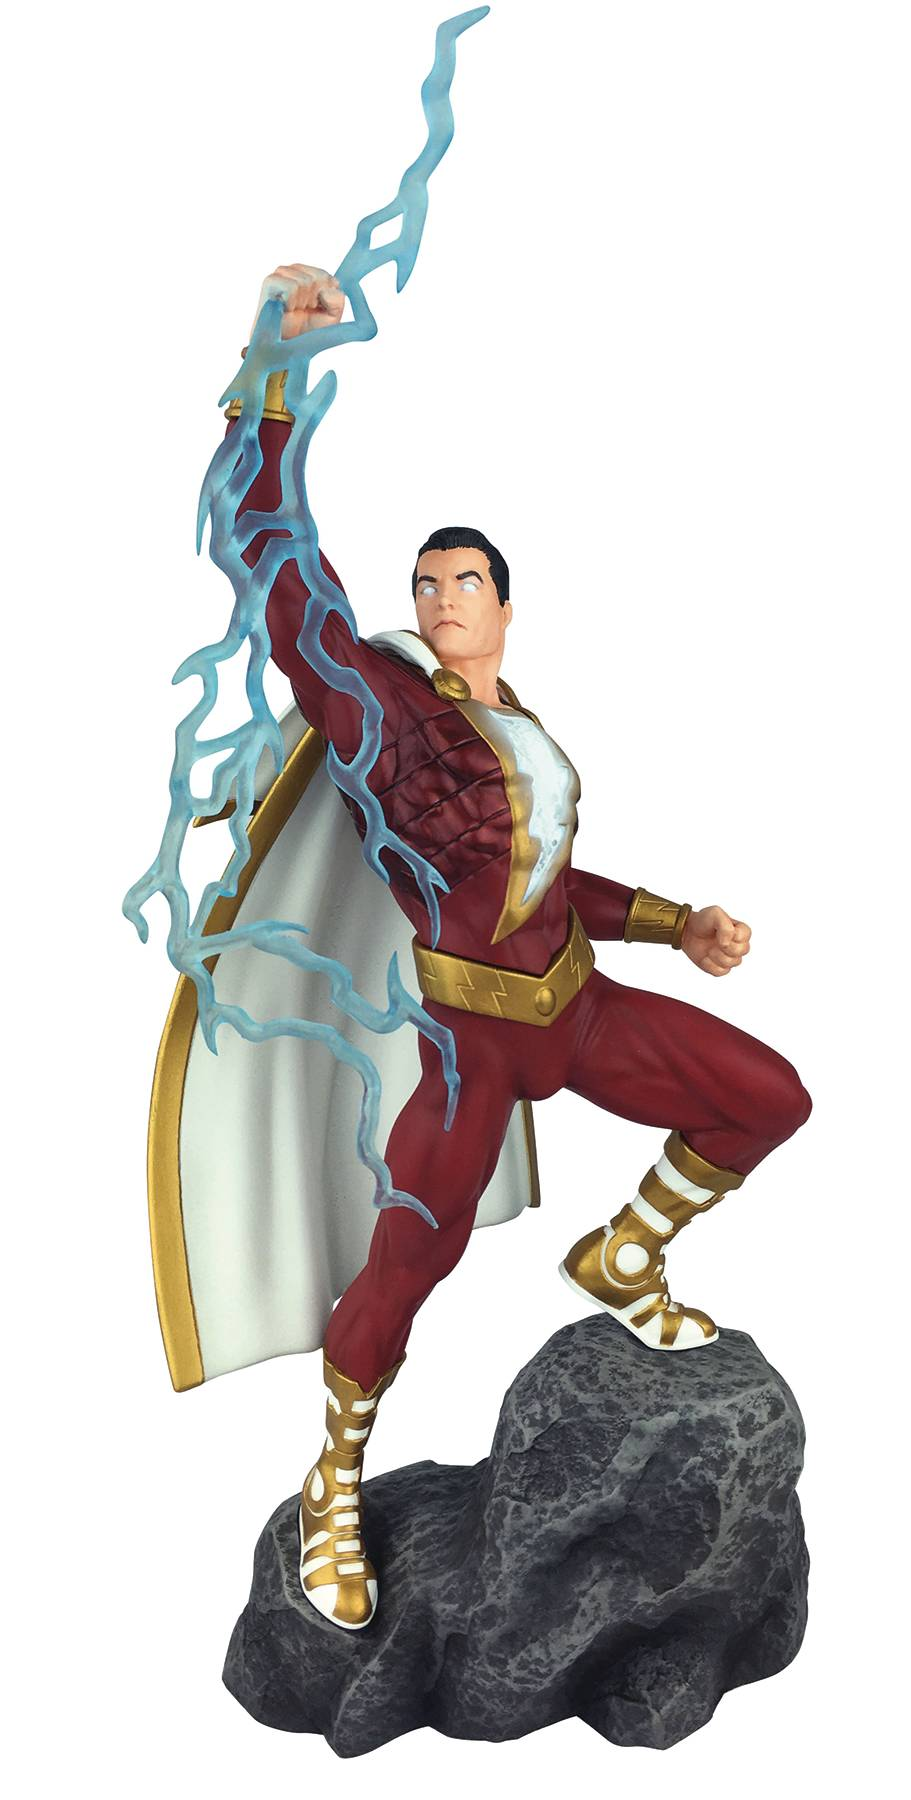 DC GALLERY SHAZAM COMIC PVC FIGURE 01/16/19